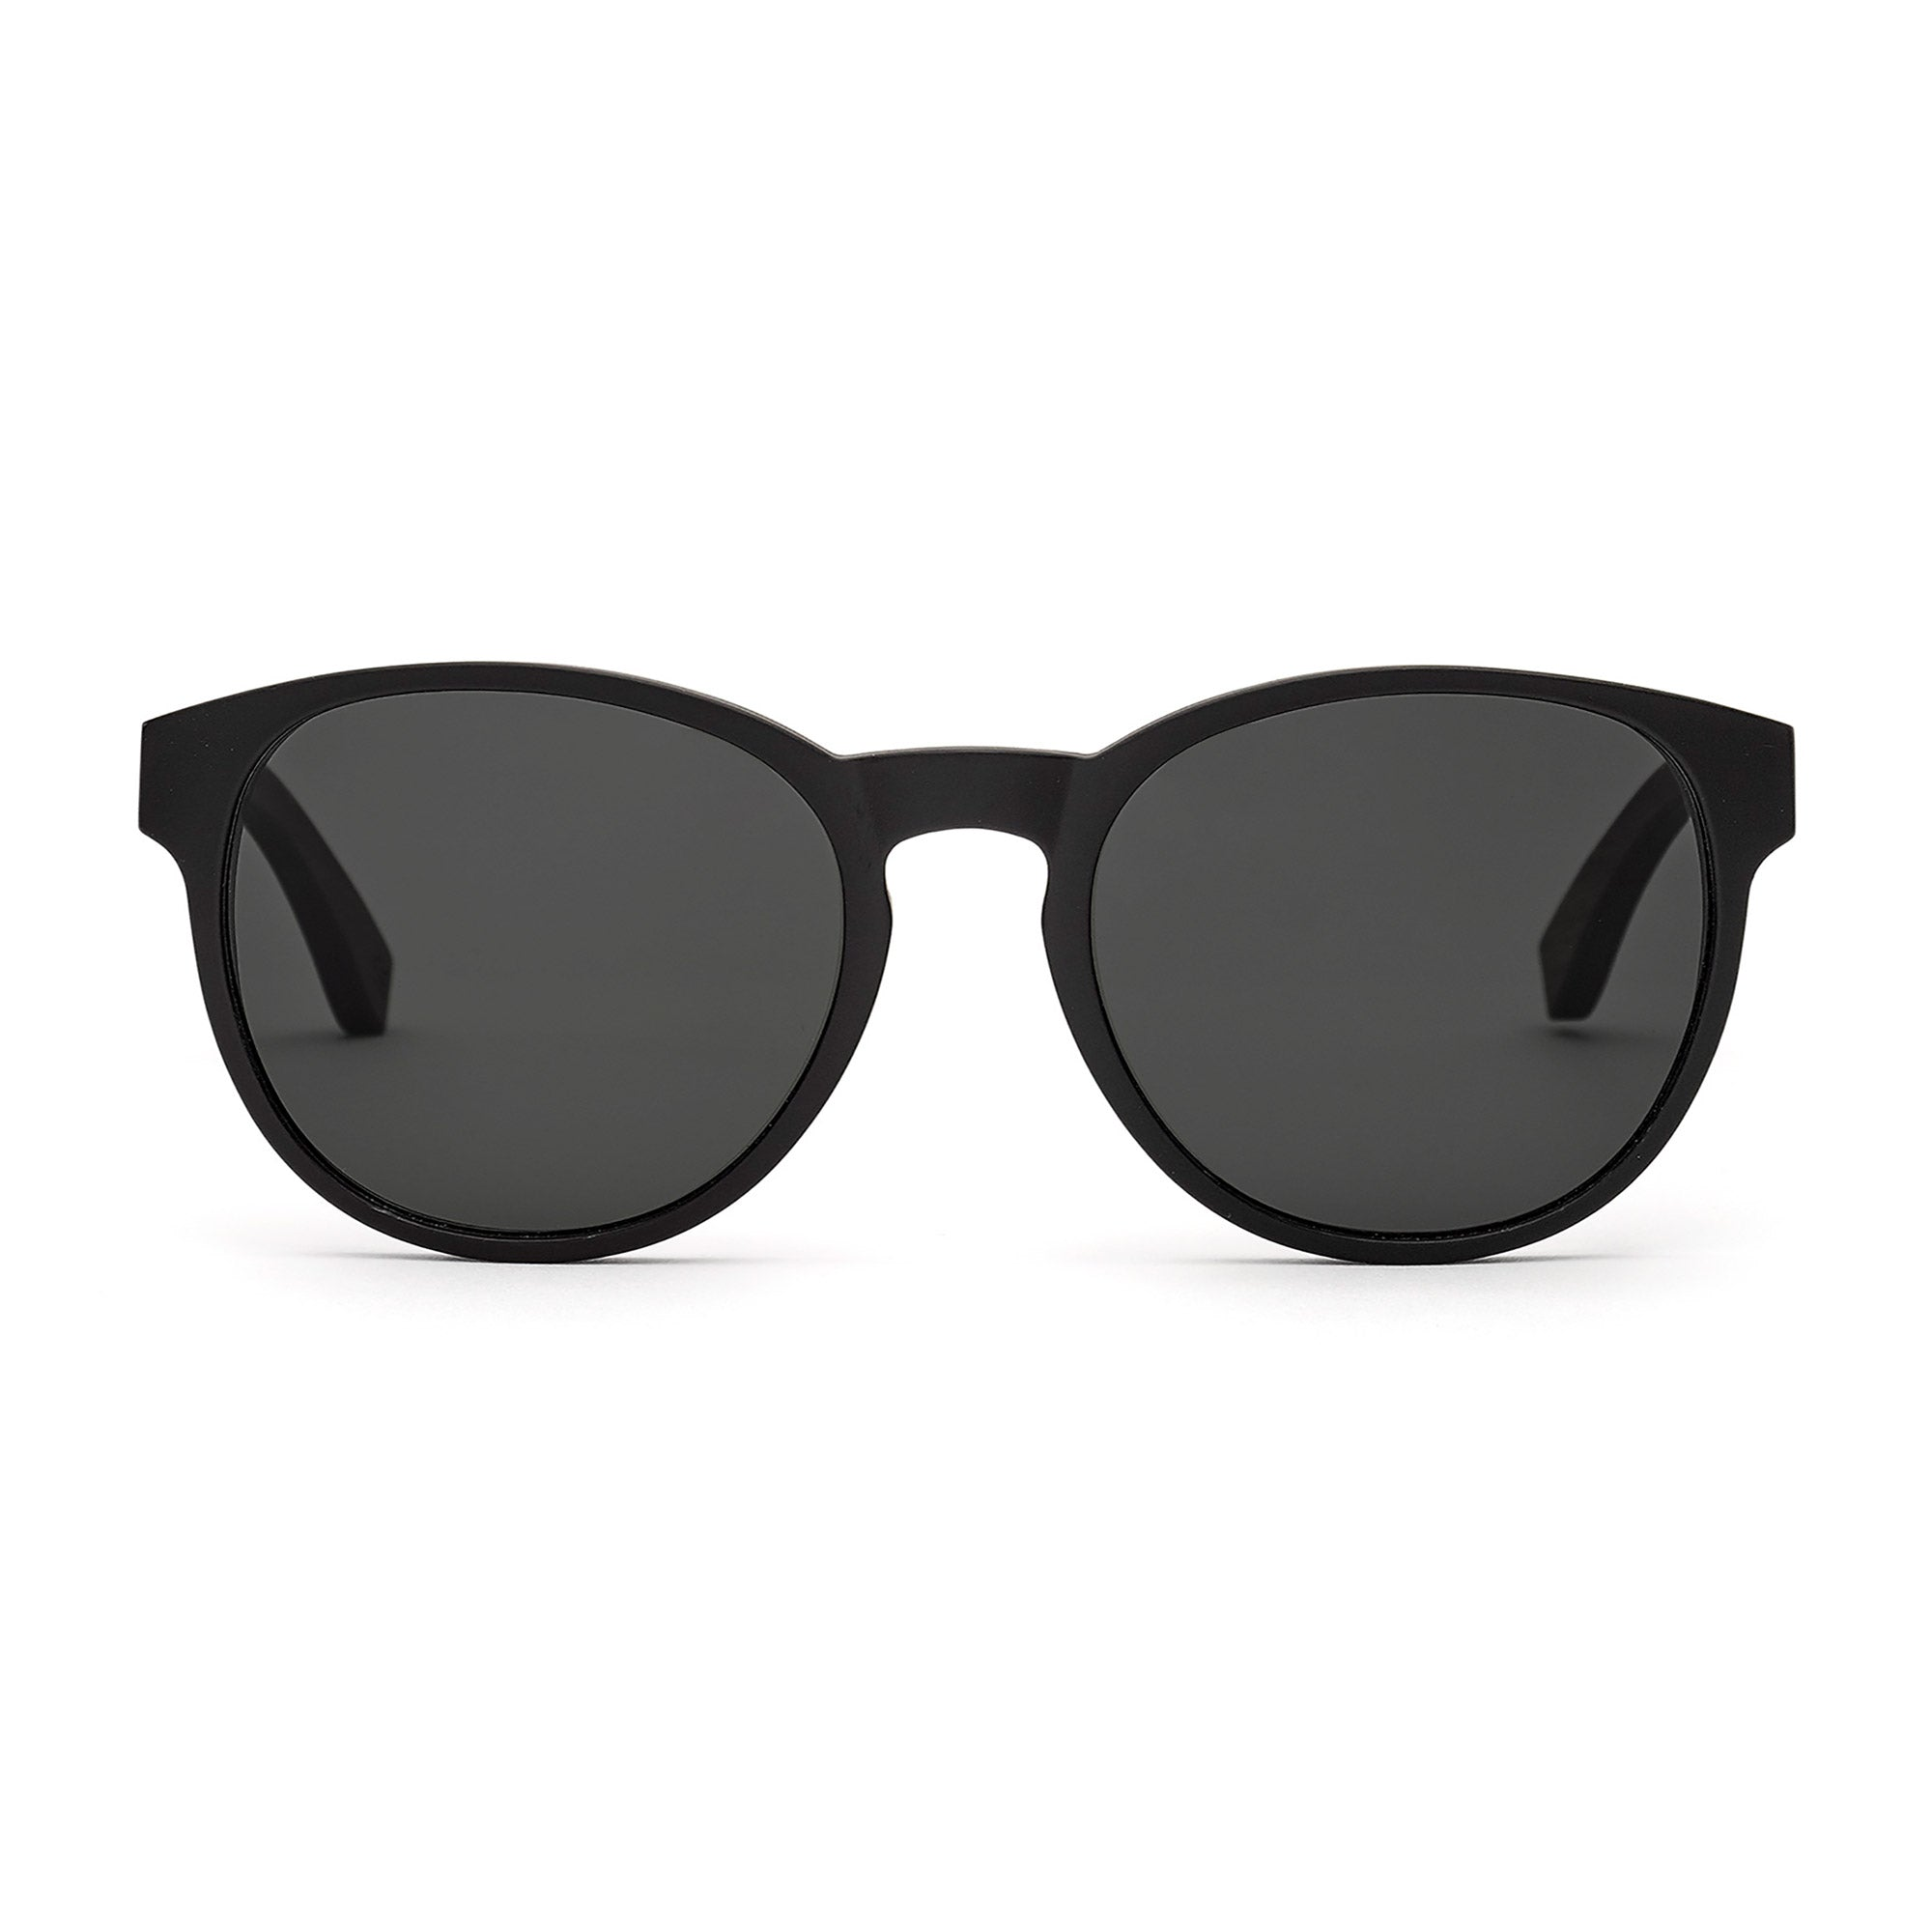 The King Of Hearts: Walnussholz - Holz-Sonnenbrille von Take A Shot.